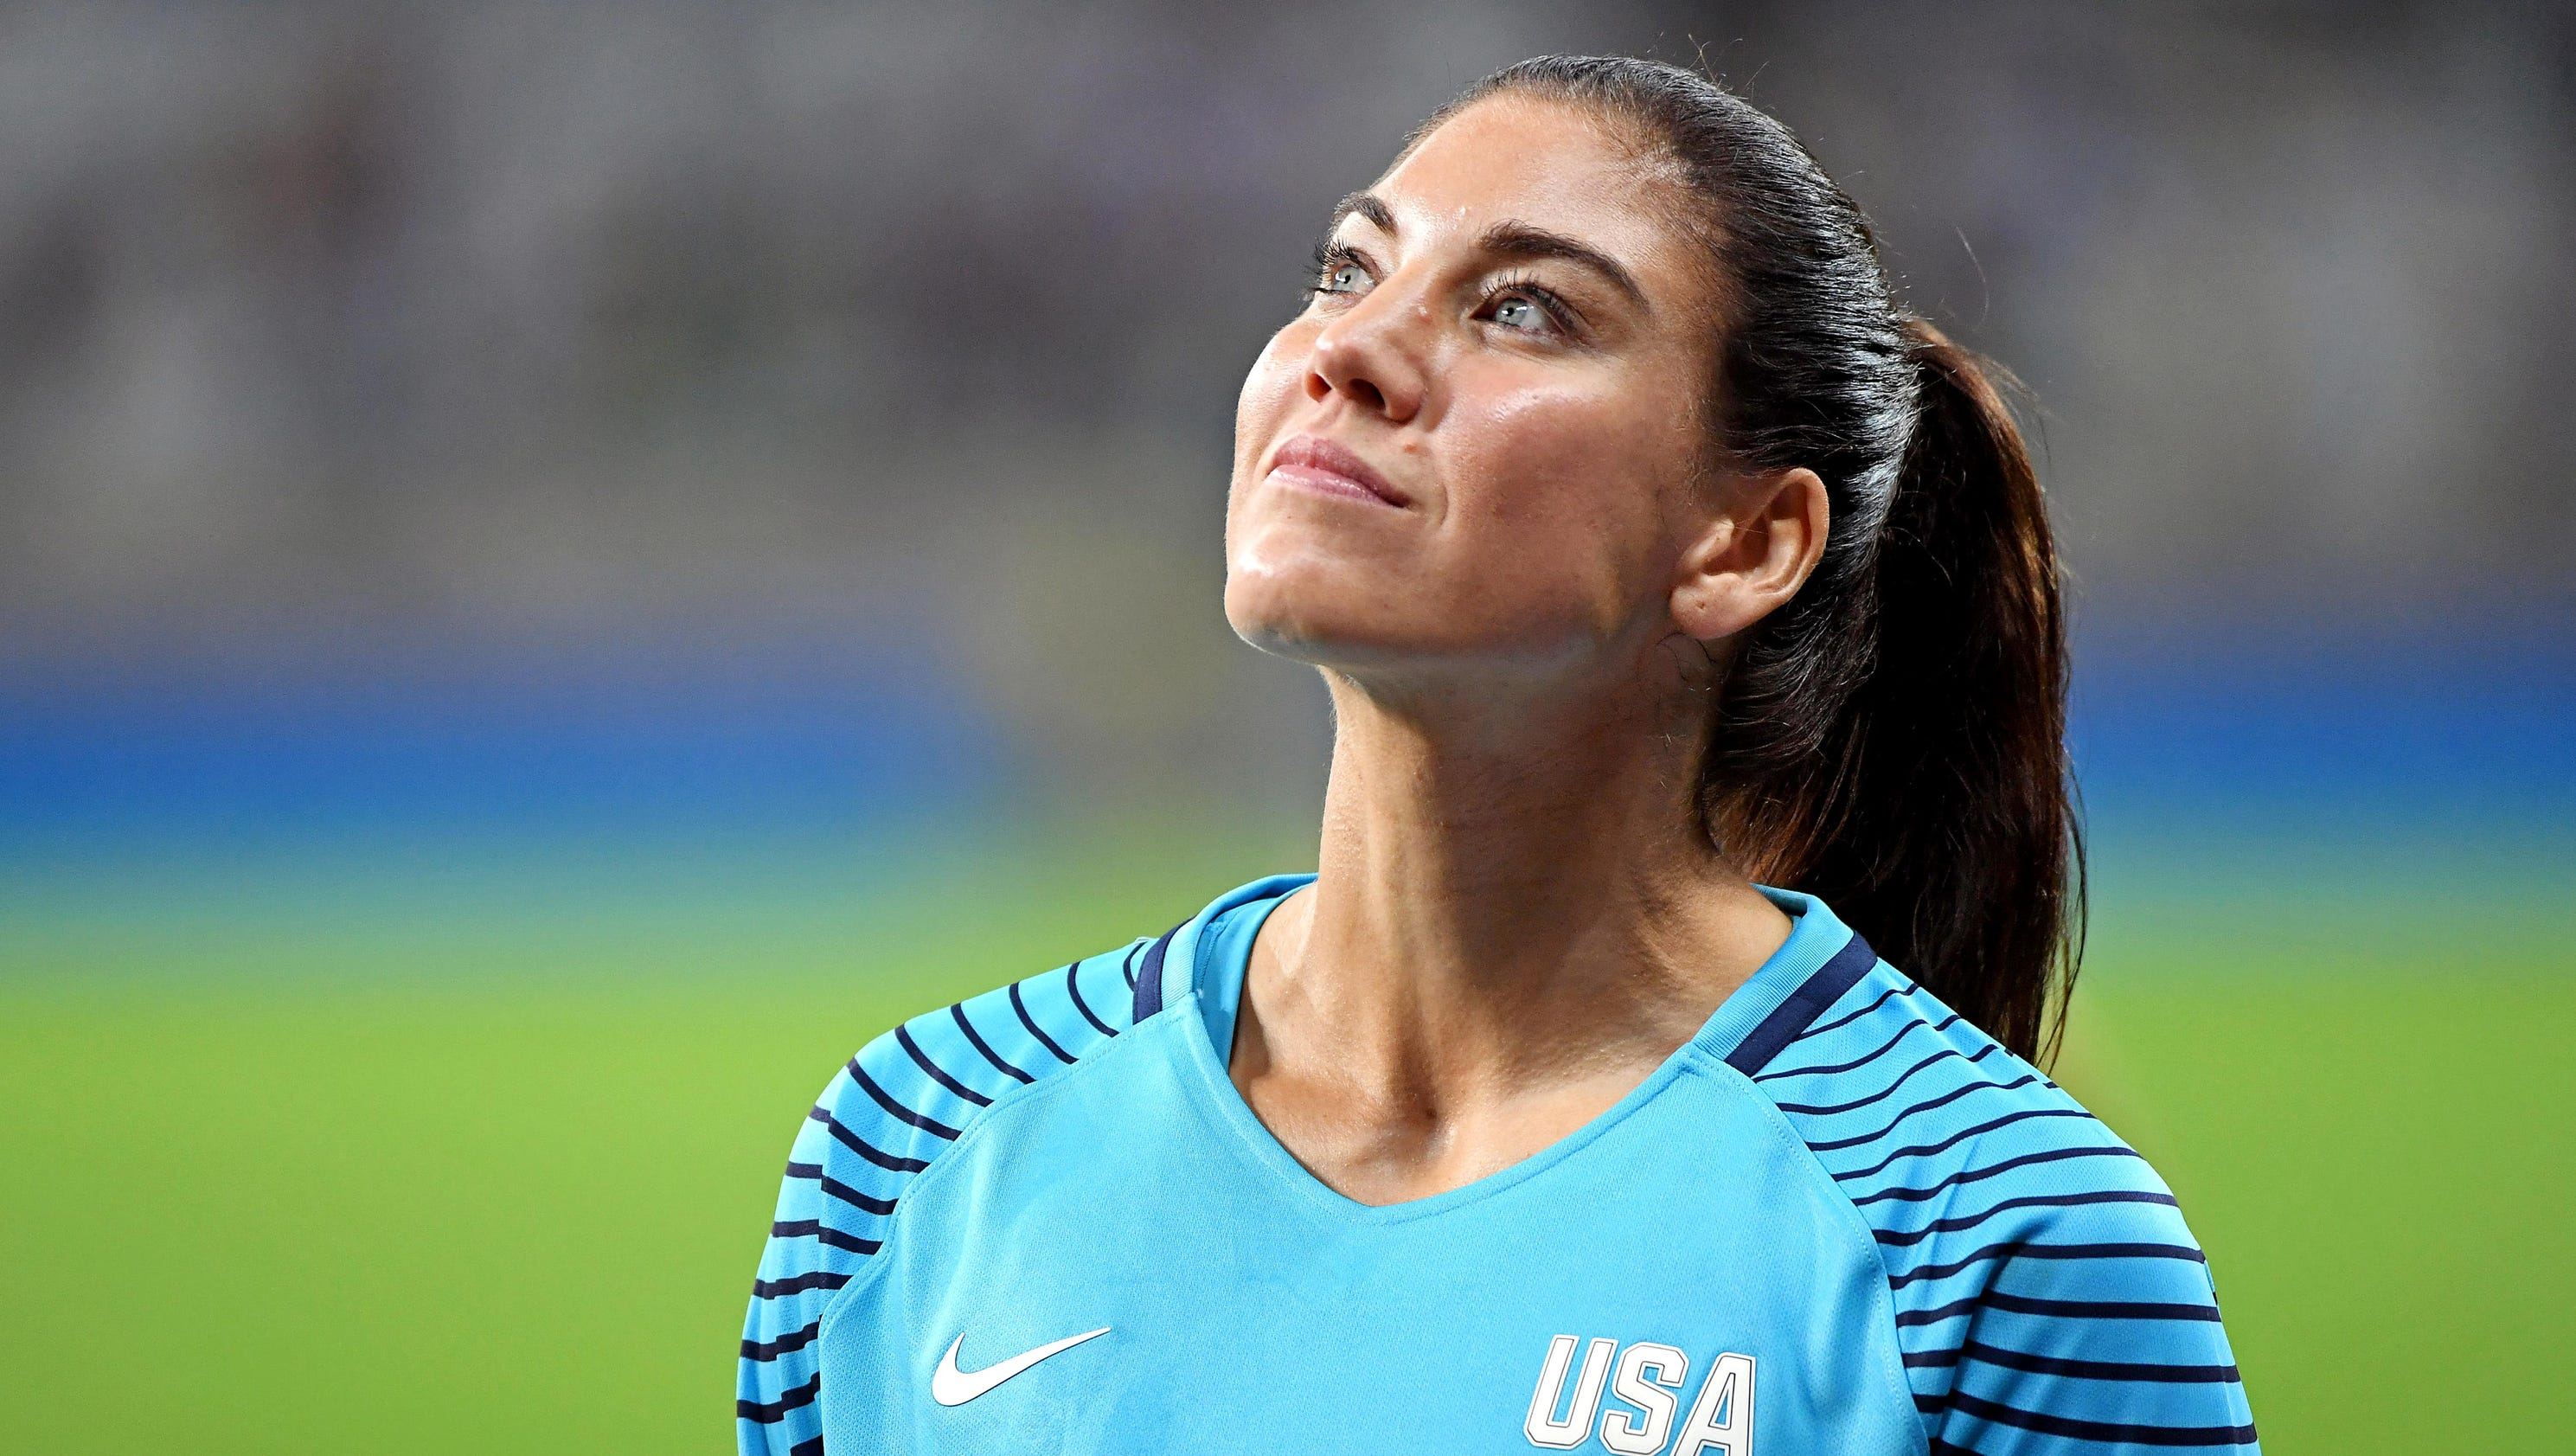 expect hope solo to continue to be a target of taunts